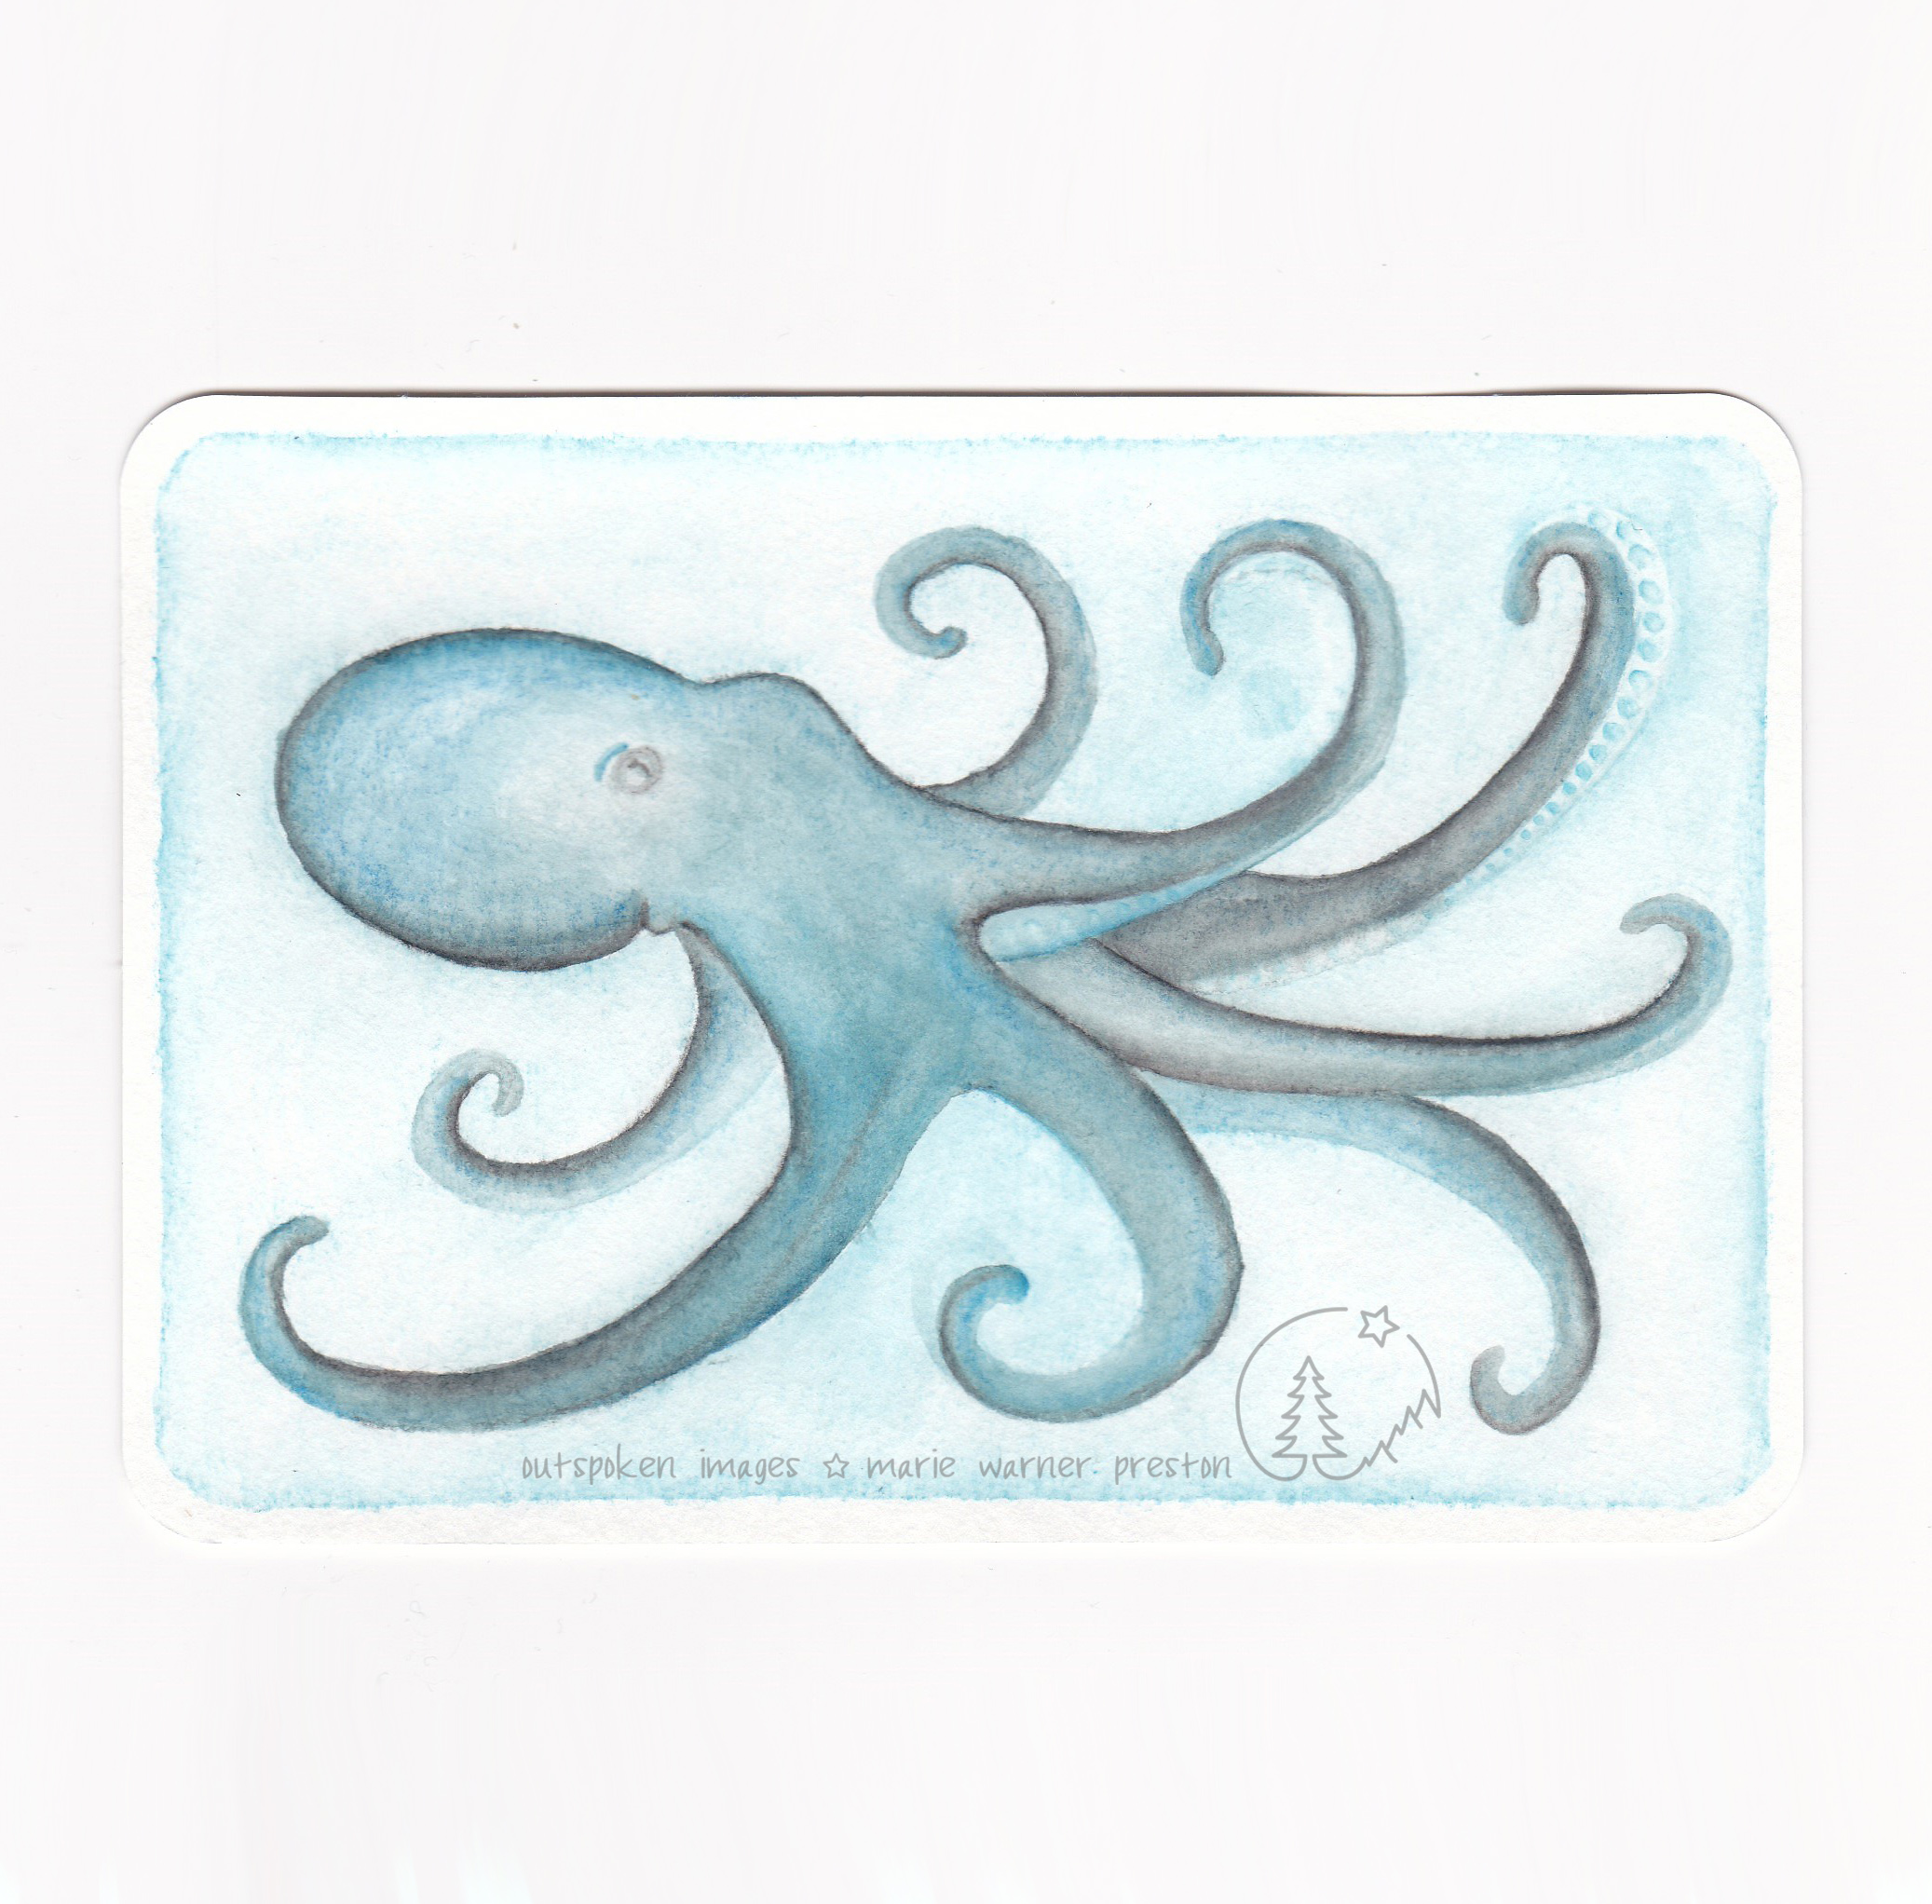 Blue octopus painting ©2021 Outspoken Image by Marie Warner Preston